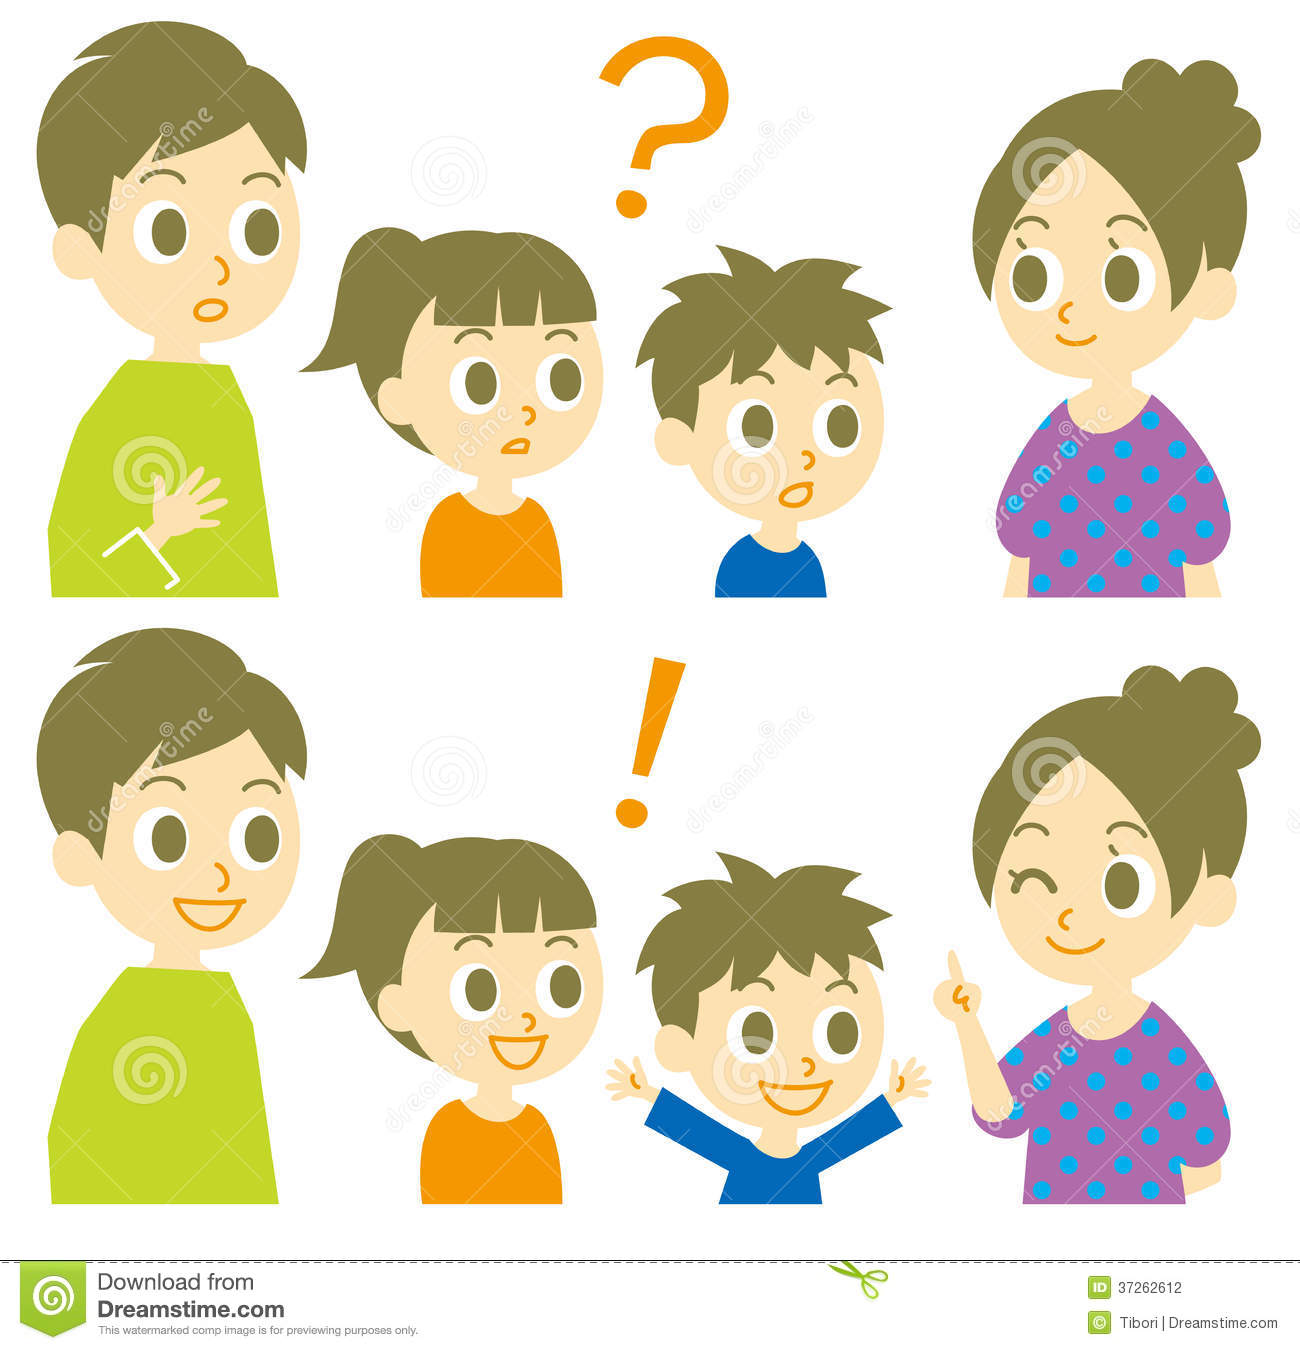 Family, question and answer